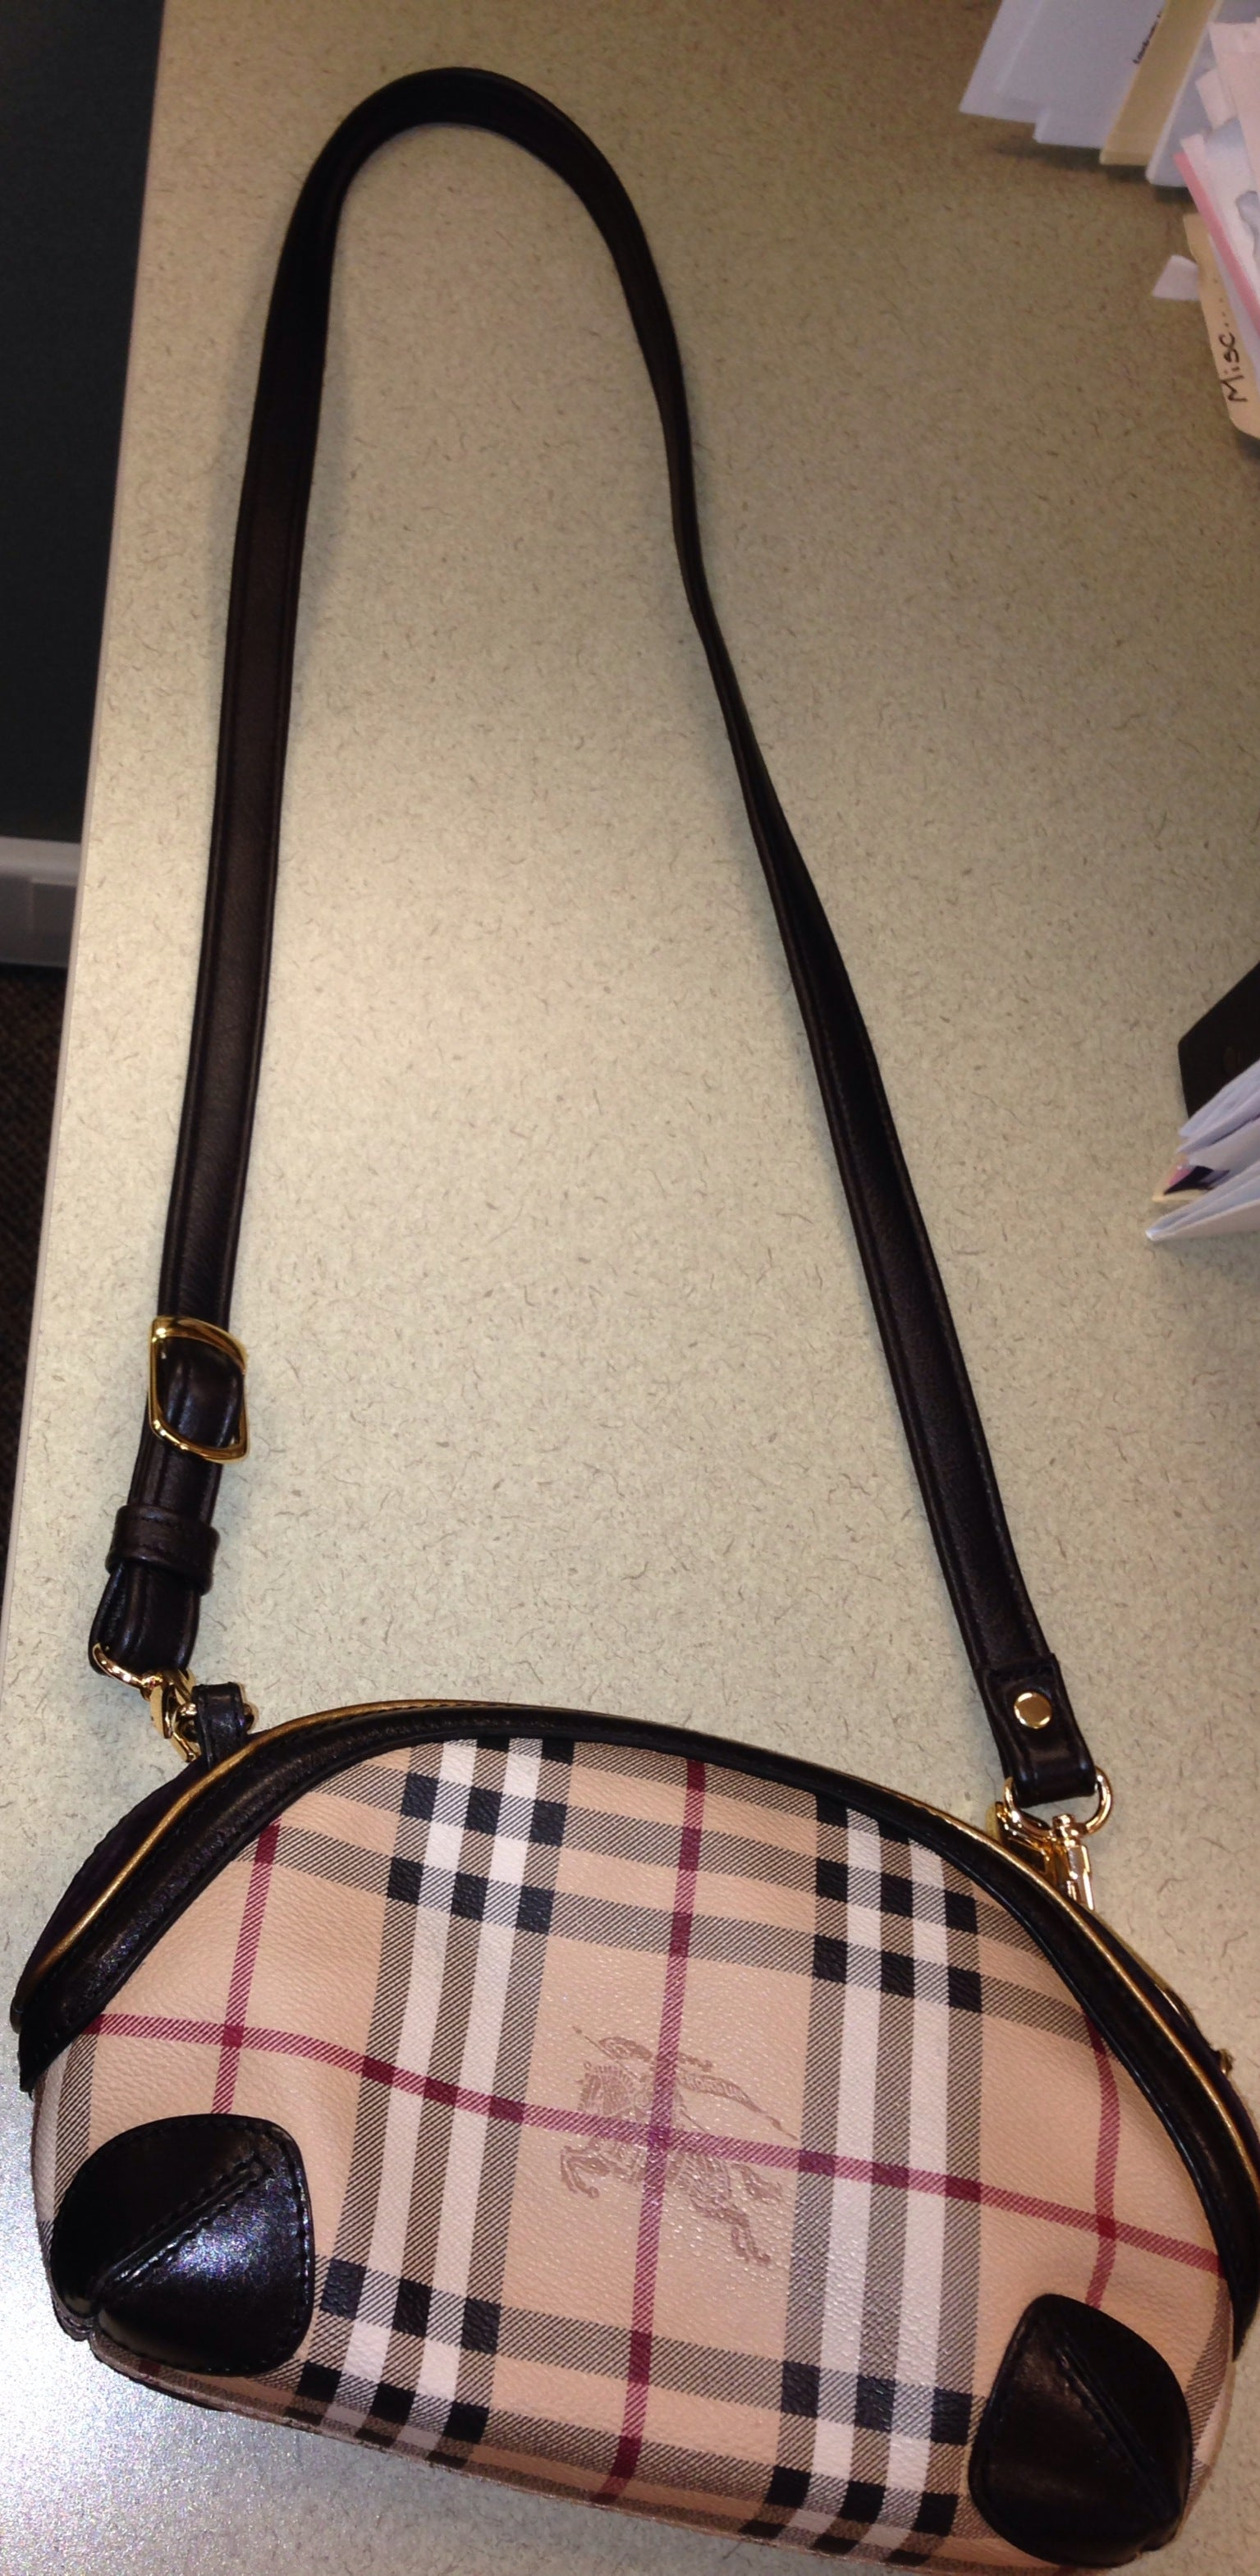 c97660073579 ... Image of Custom Replacement Straps   Handles for Burberry Handbags  Purses  ...